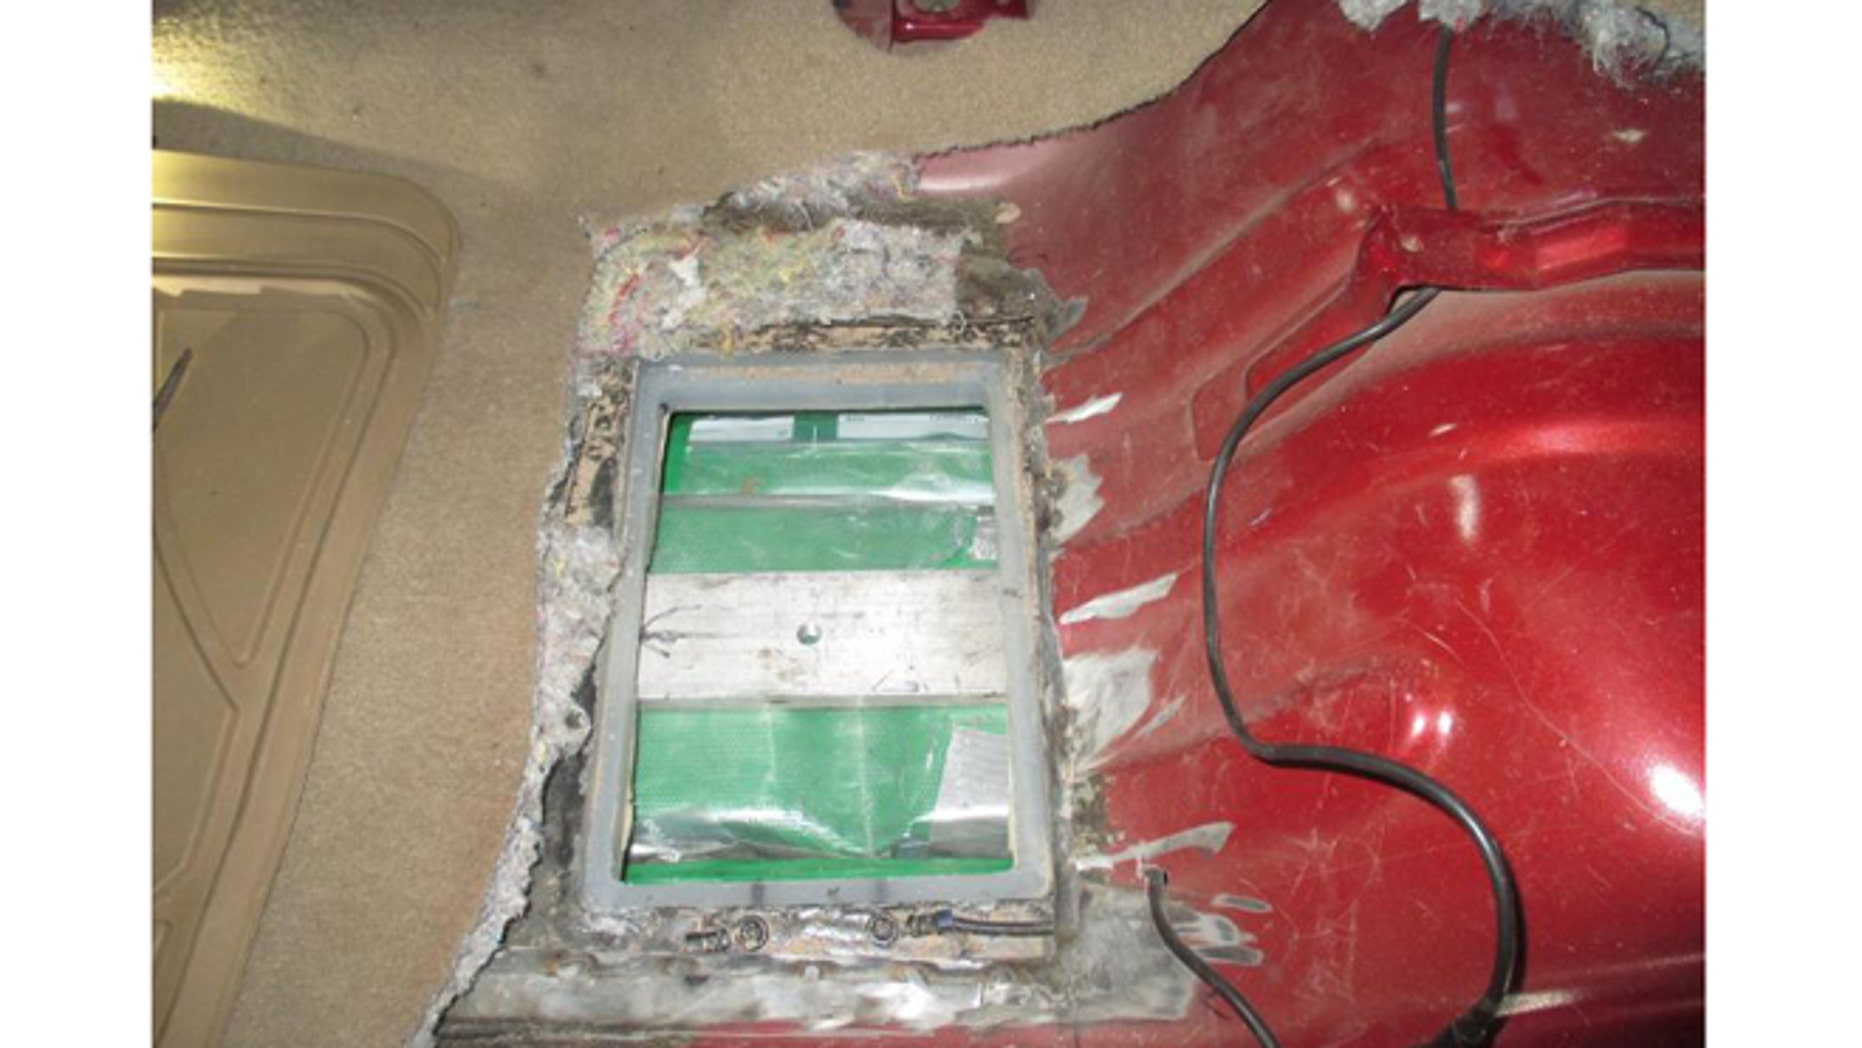 Officers removed the fuel tank and located green taped bundles of cocaine at a U.S.-Mexico border crossing.